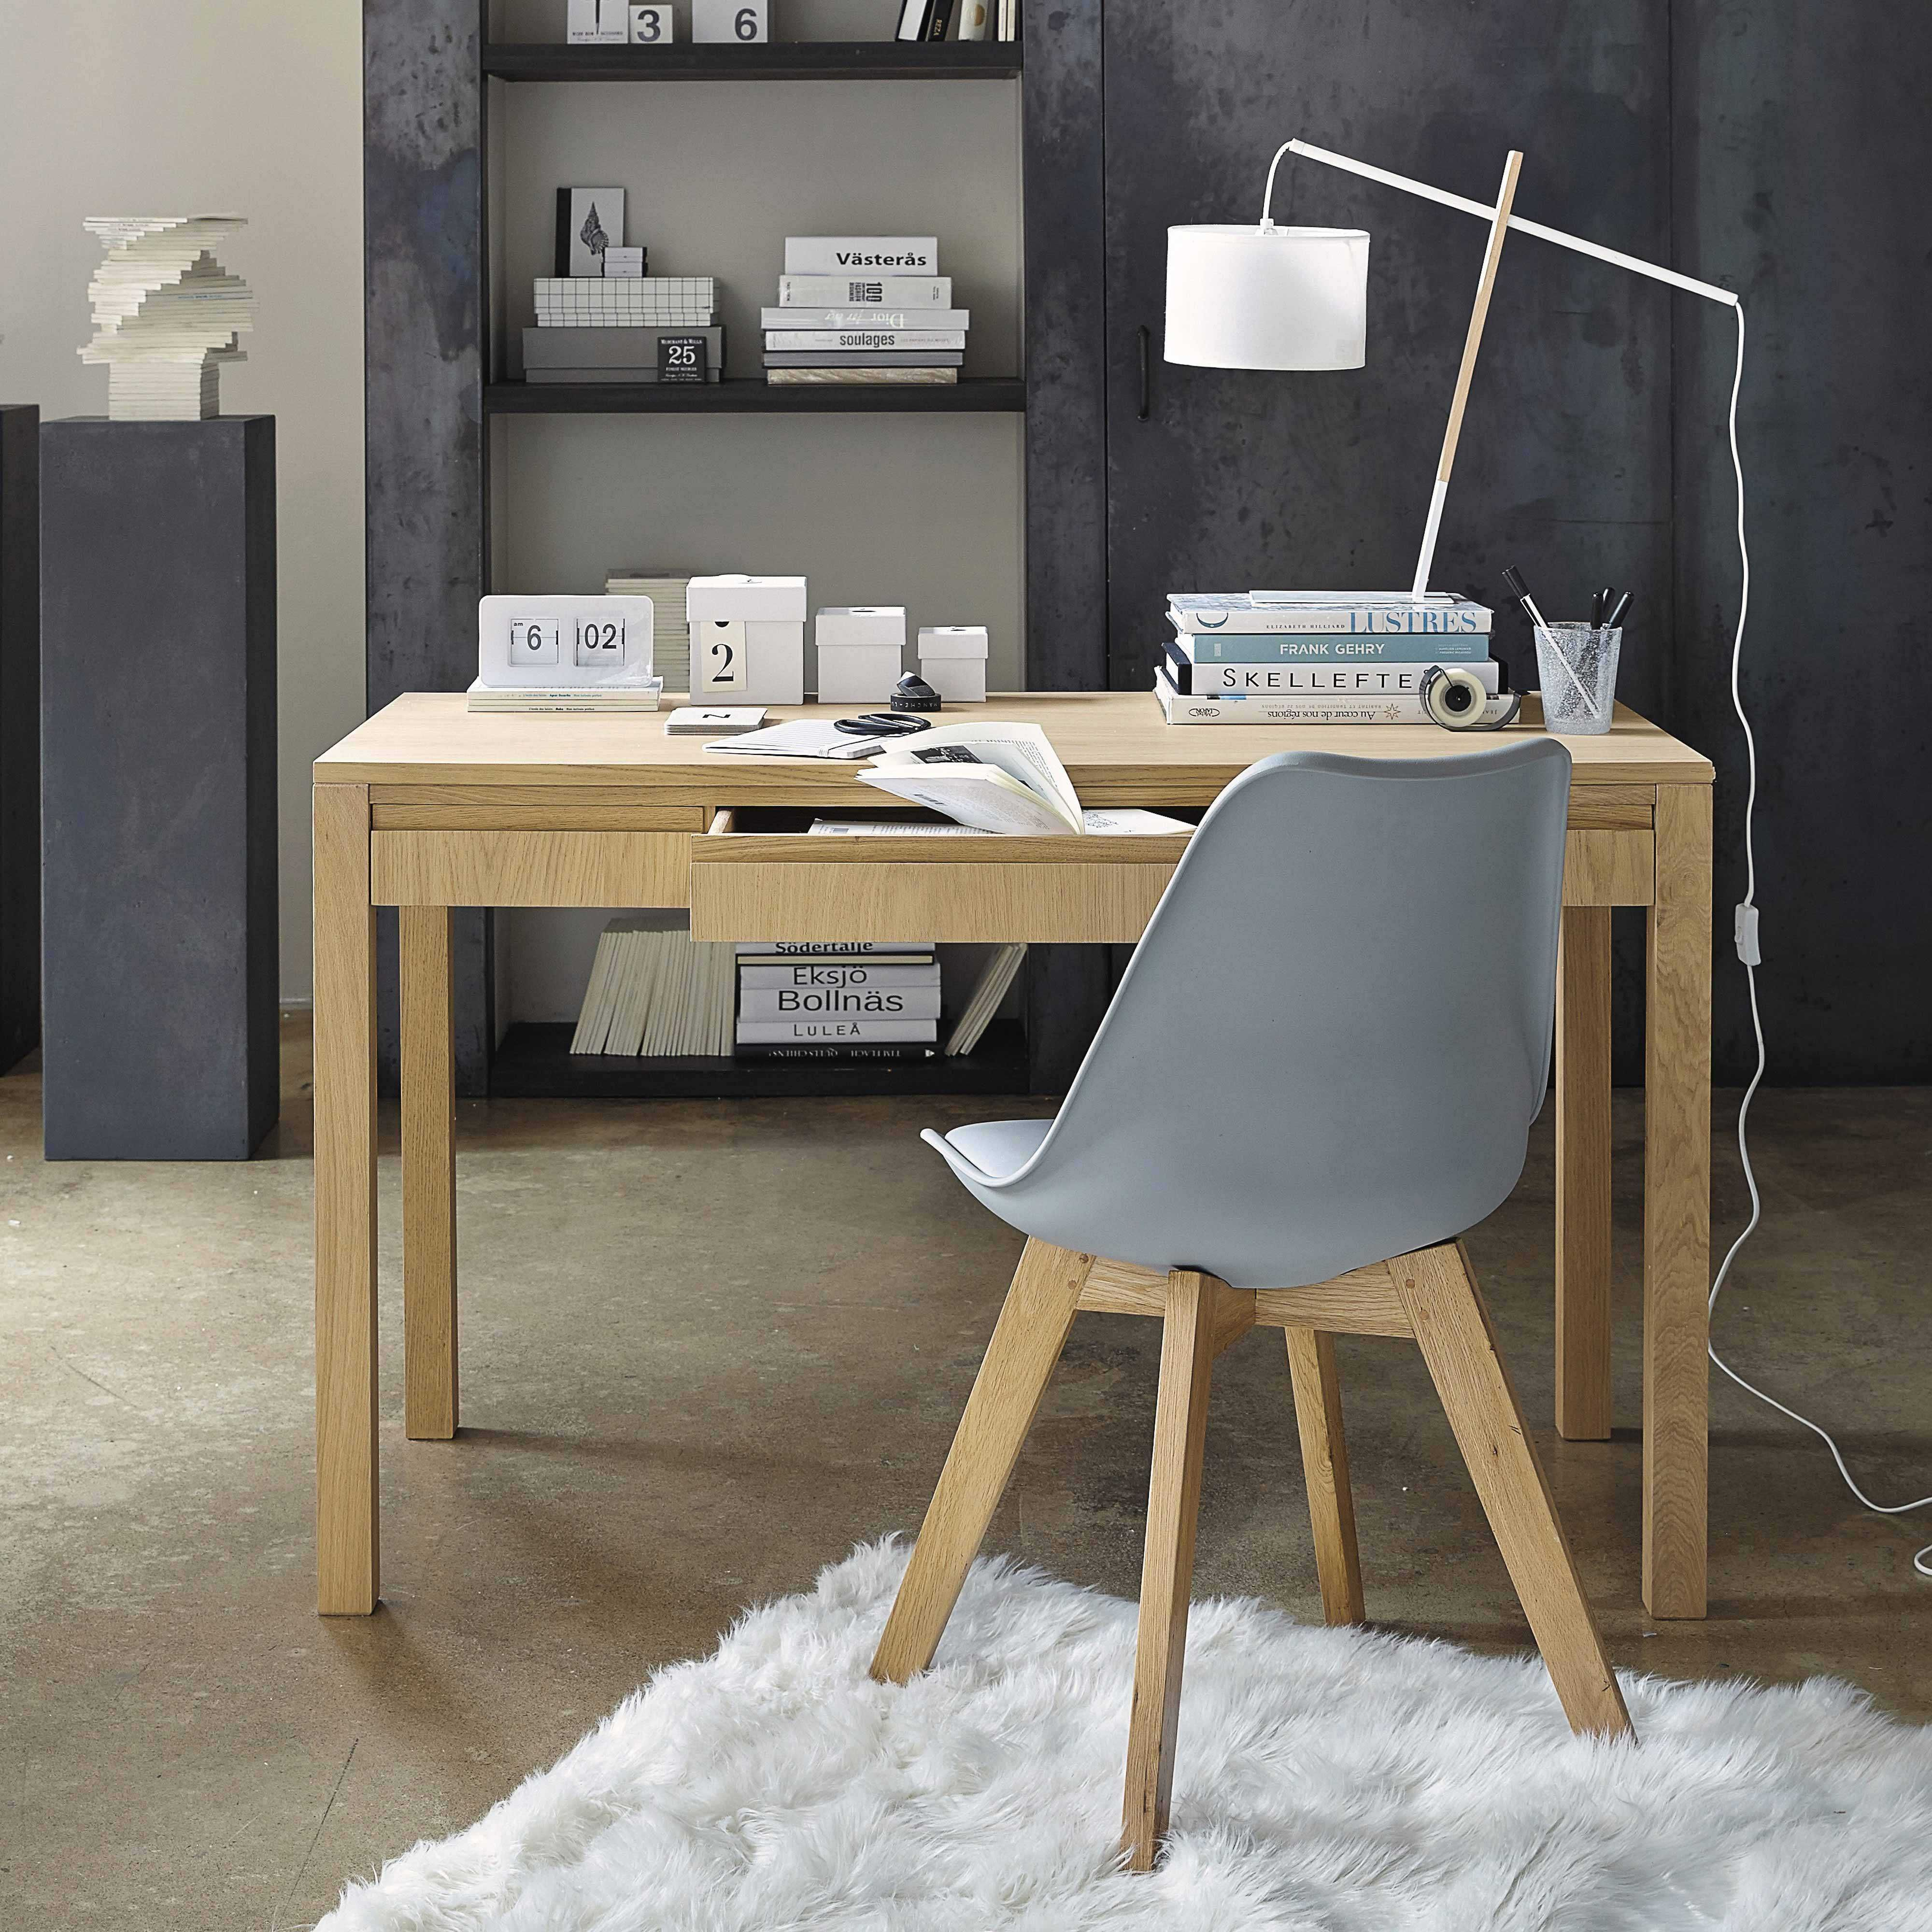 chaise en polypropyl ne et ch ne grise ice maisons du monde sous sol pinterest office spaces. Black Bedroom Furniture Sets. Home Design Ideas